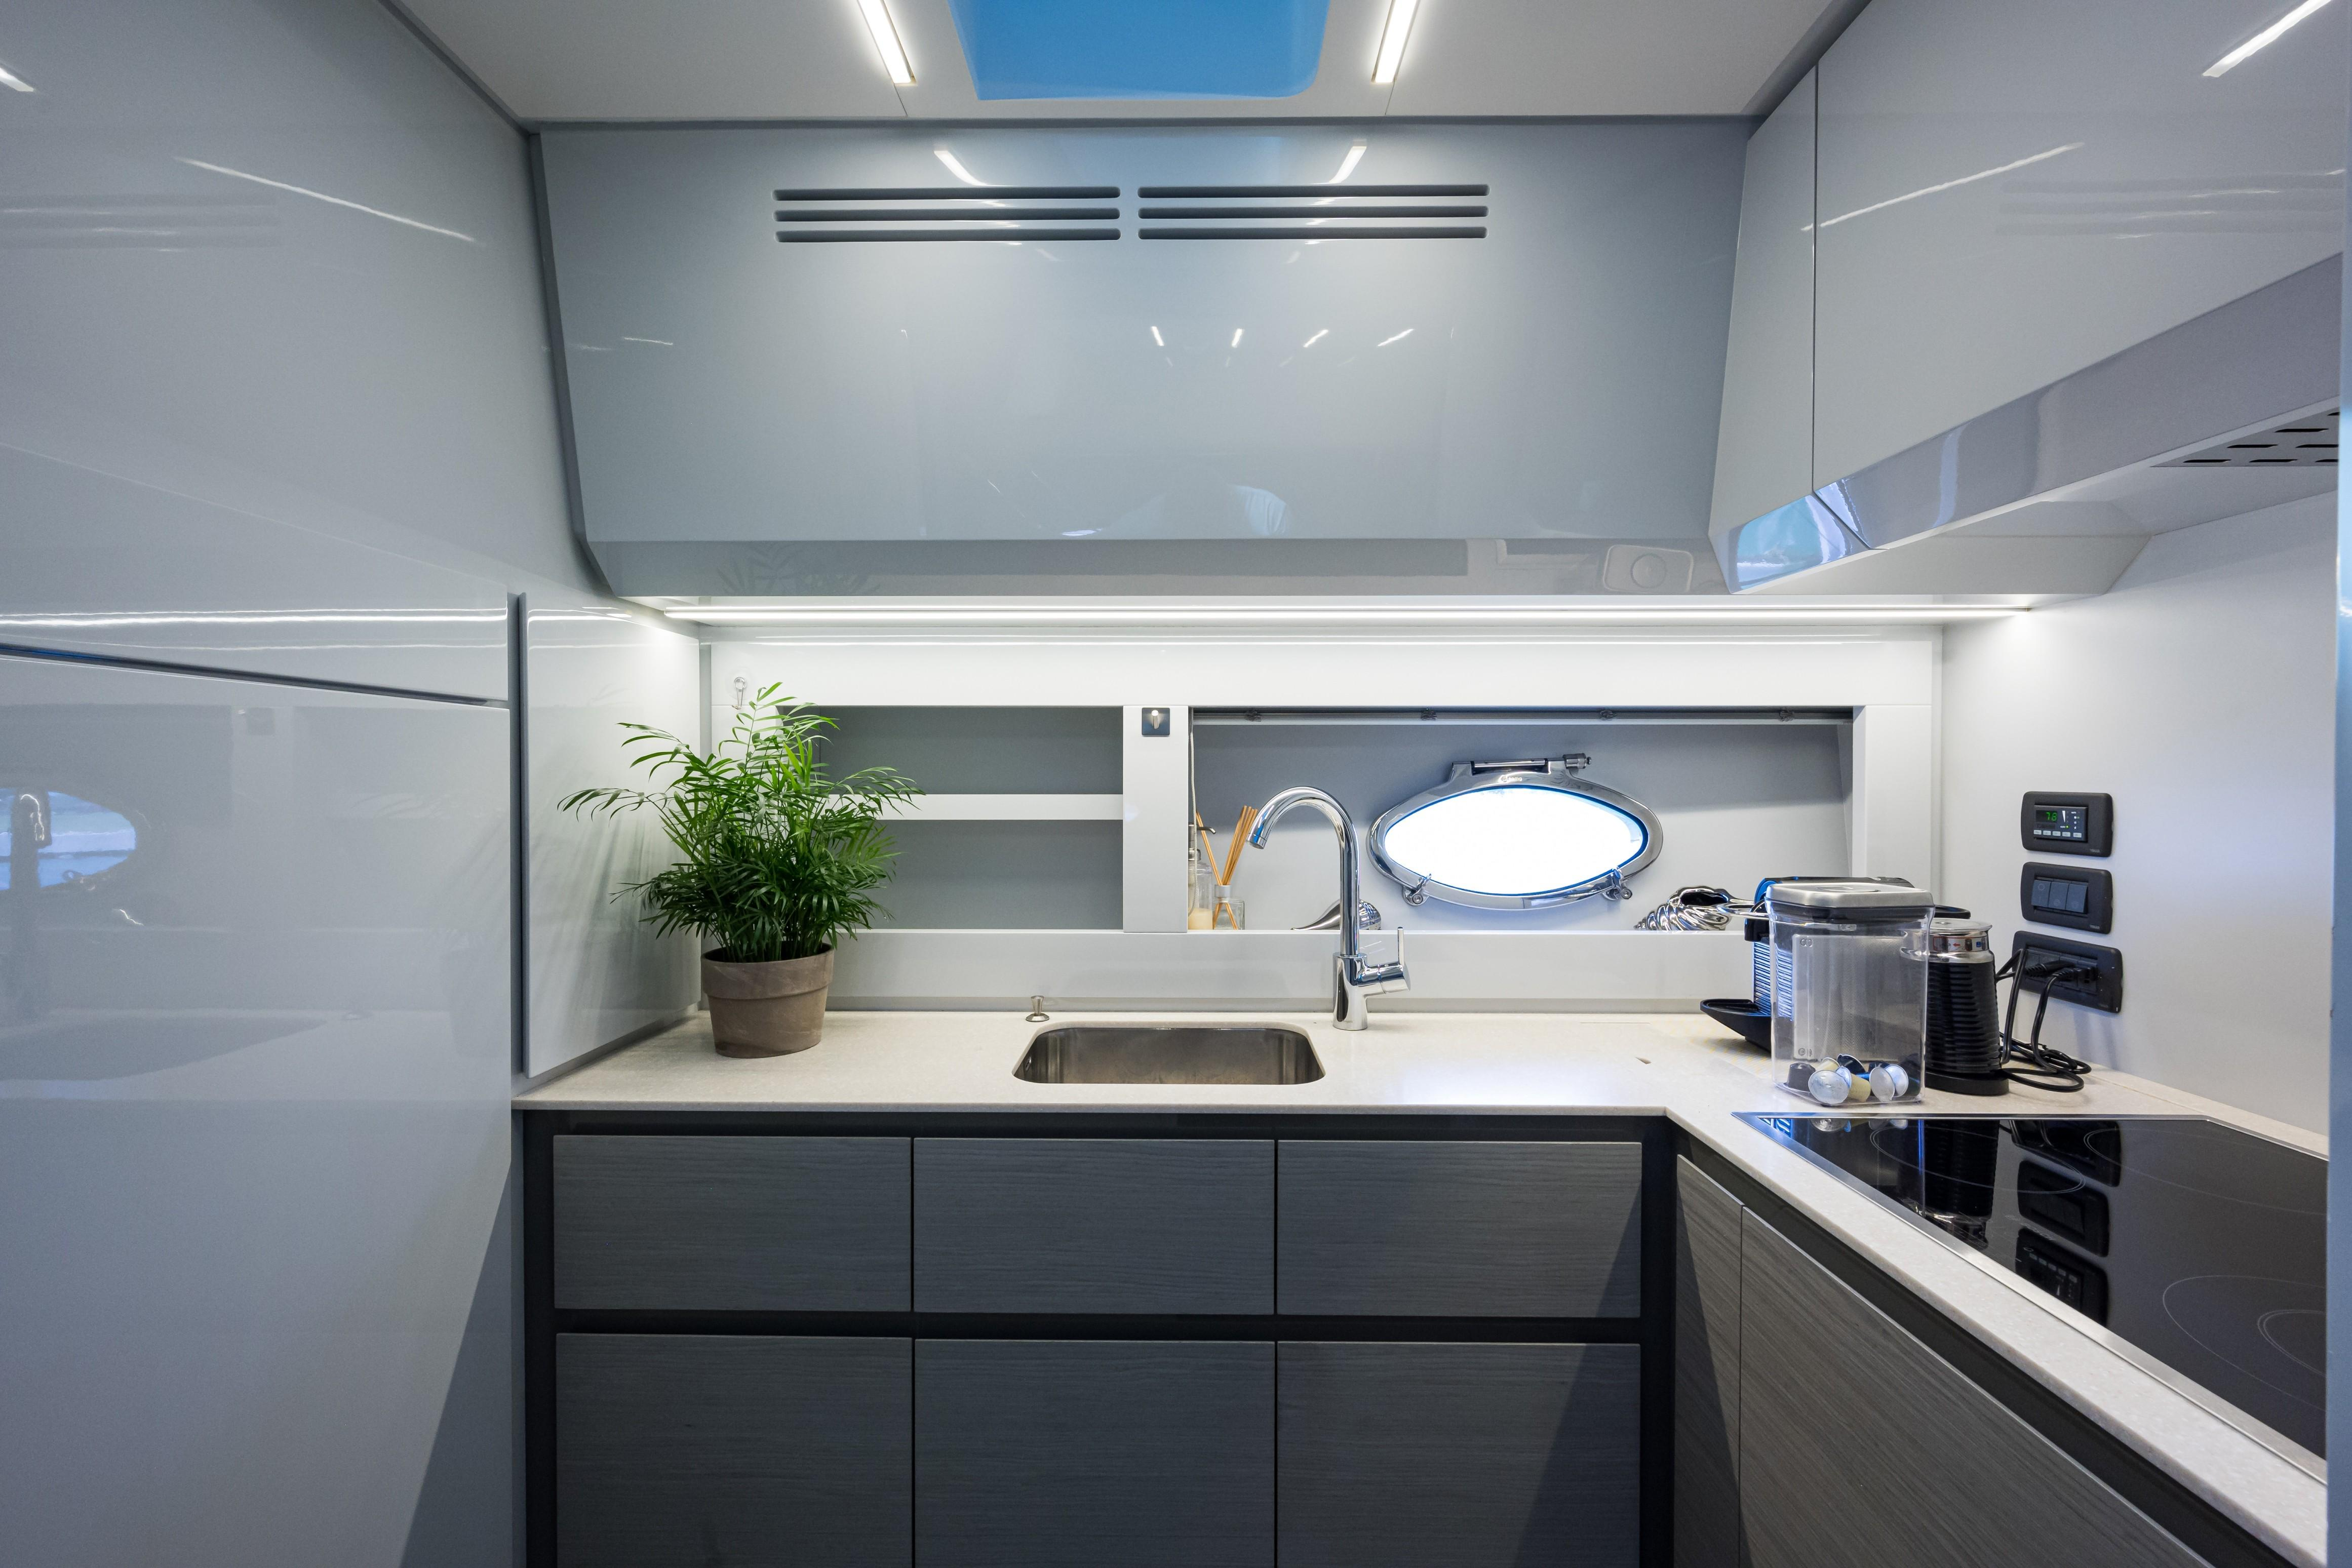 2016 Pershing 62 - Galley